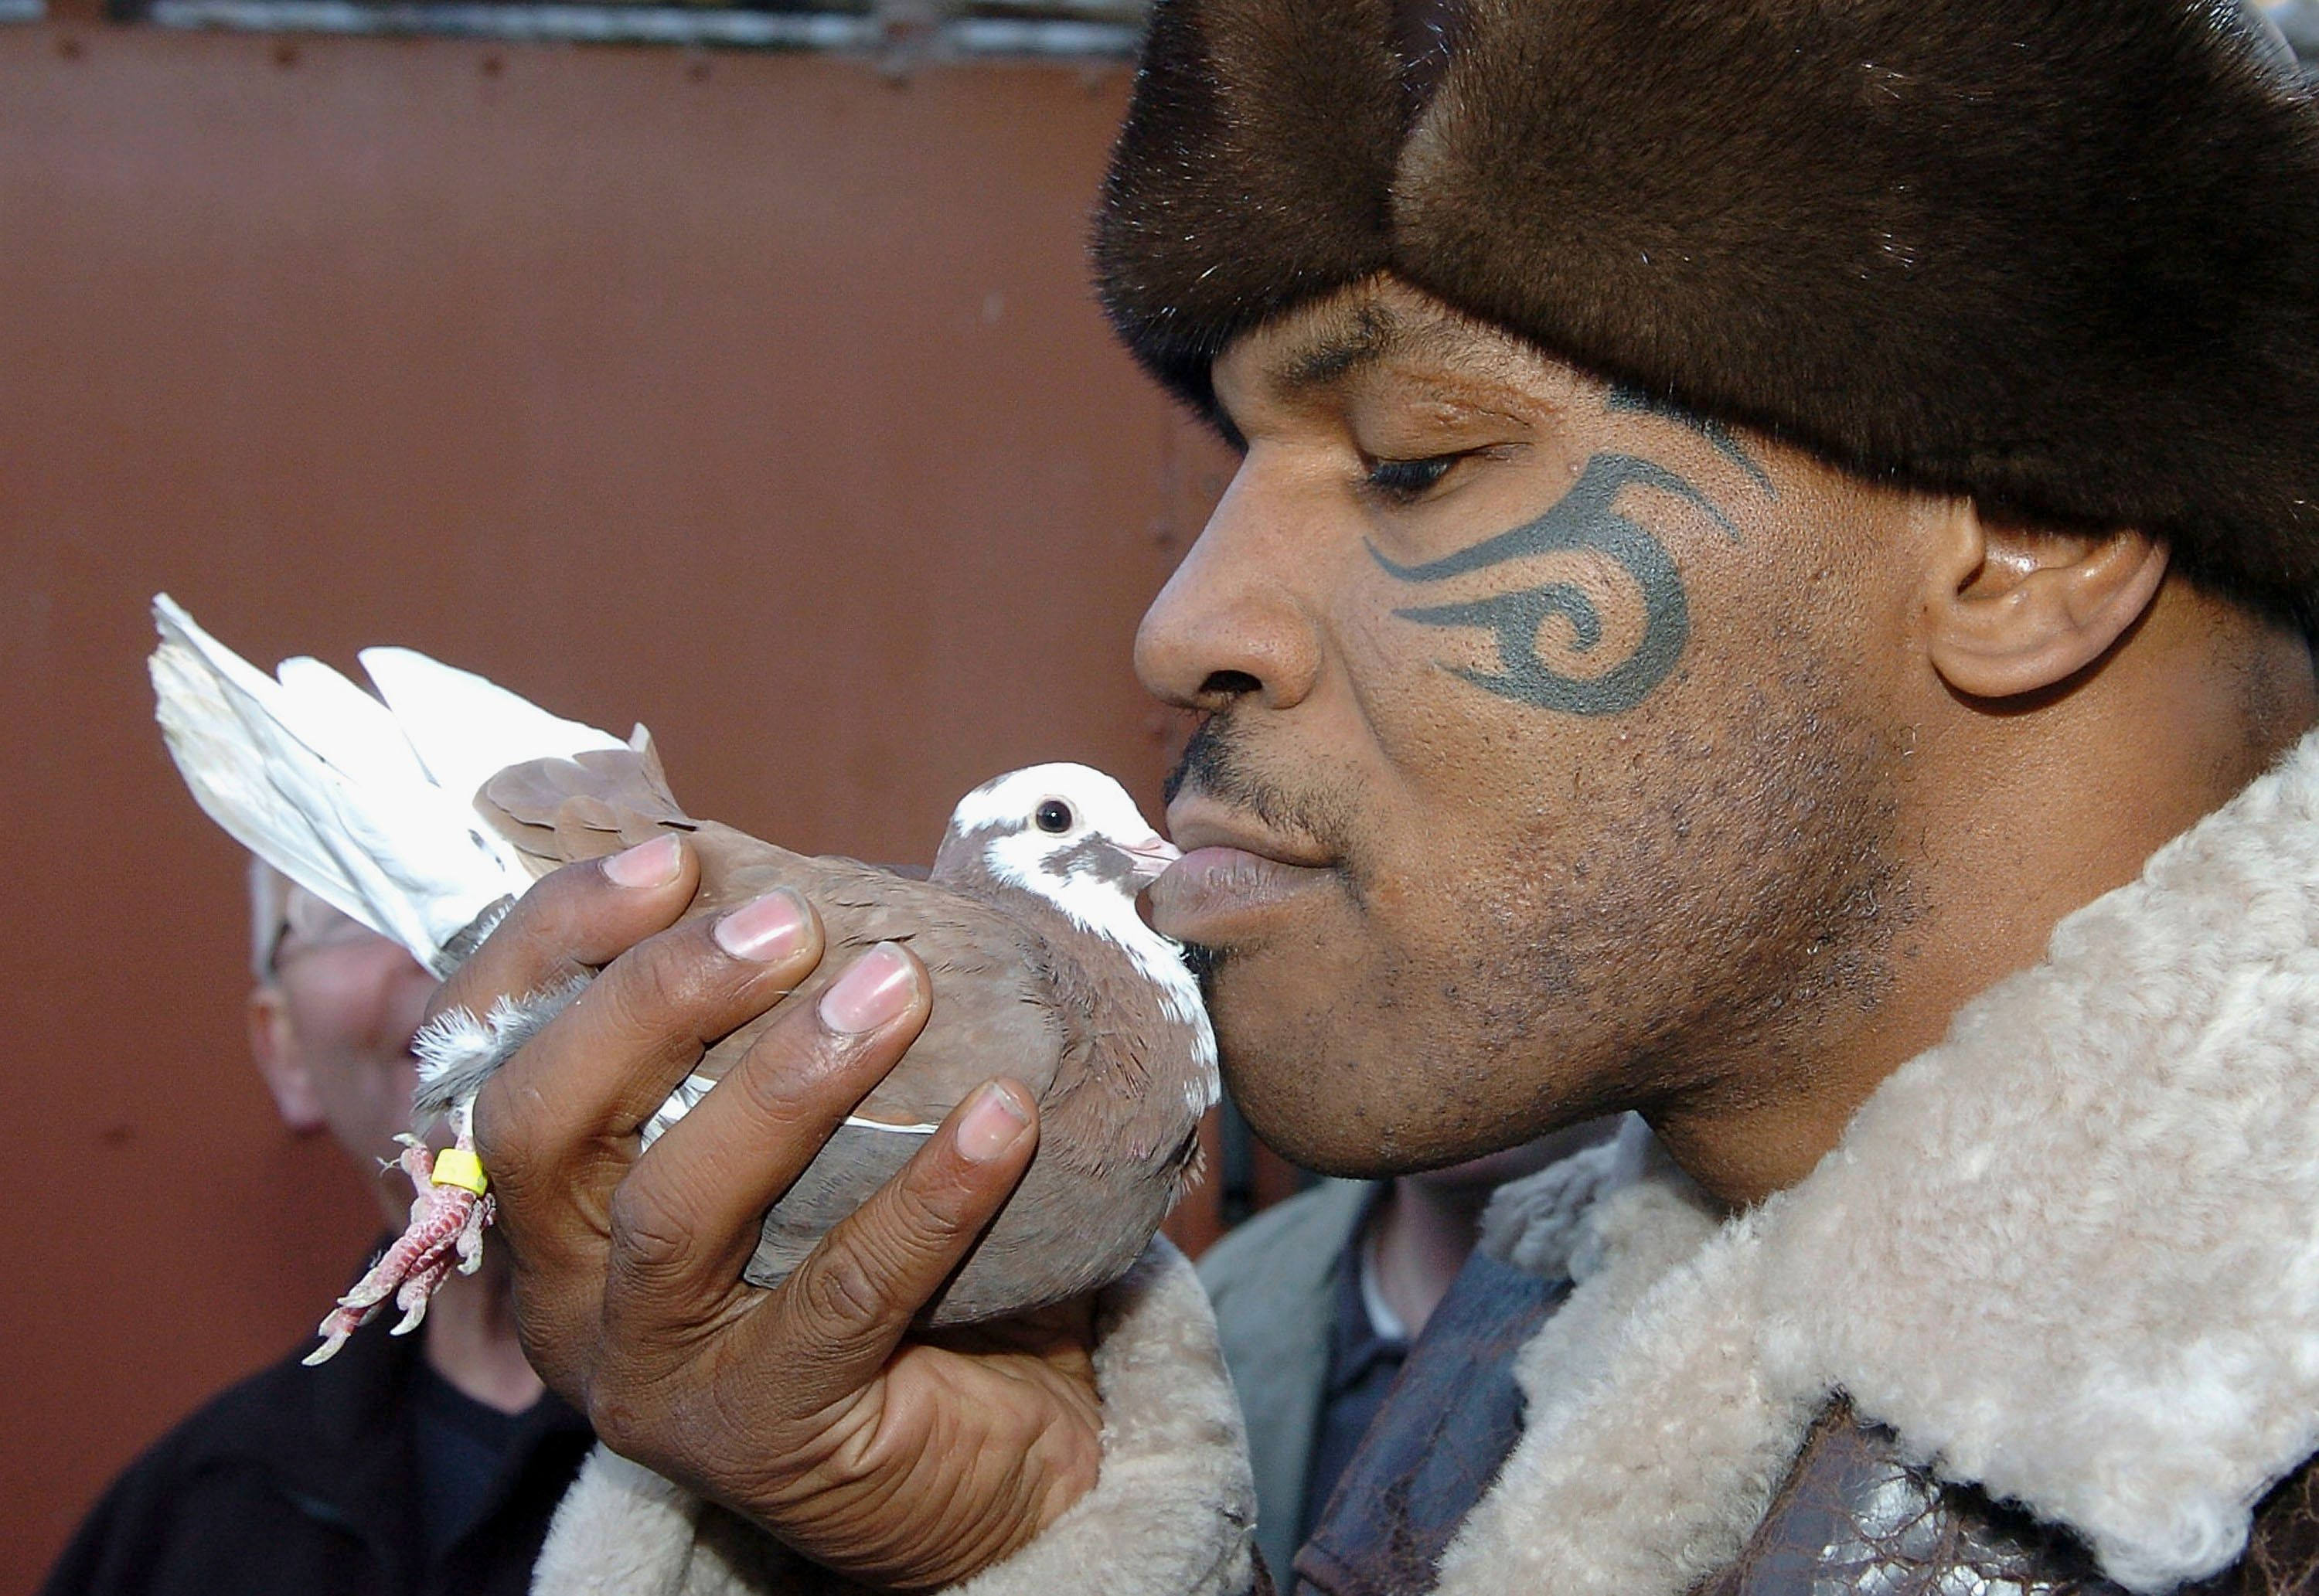 WALSALL, UNITED KINGDOM - NOVEMBER 18:  Former world heavyweight boxing champion Mike Tyson meets up with a pigeon fancier Horace Potts (L), of Bloxwich, Walsall, West Midlands on November 18, 2005 in Walsall, England. Tyson who is well known for his love of pigeons dropped in to the home of pigeon fancier Horace Watts whilst on route to Birmingham, England, for a hotel dinner boxing event.  (Photo by Stringer/Getty Images)